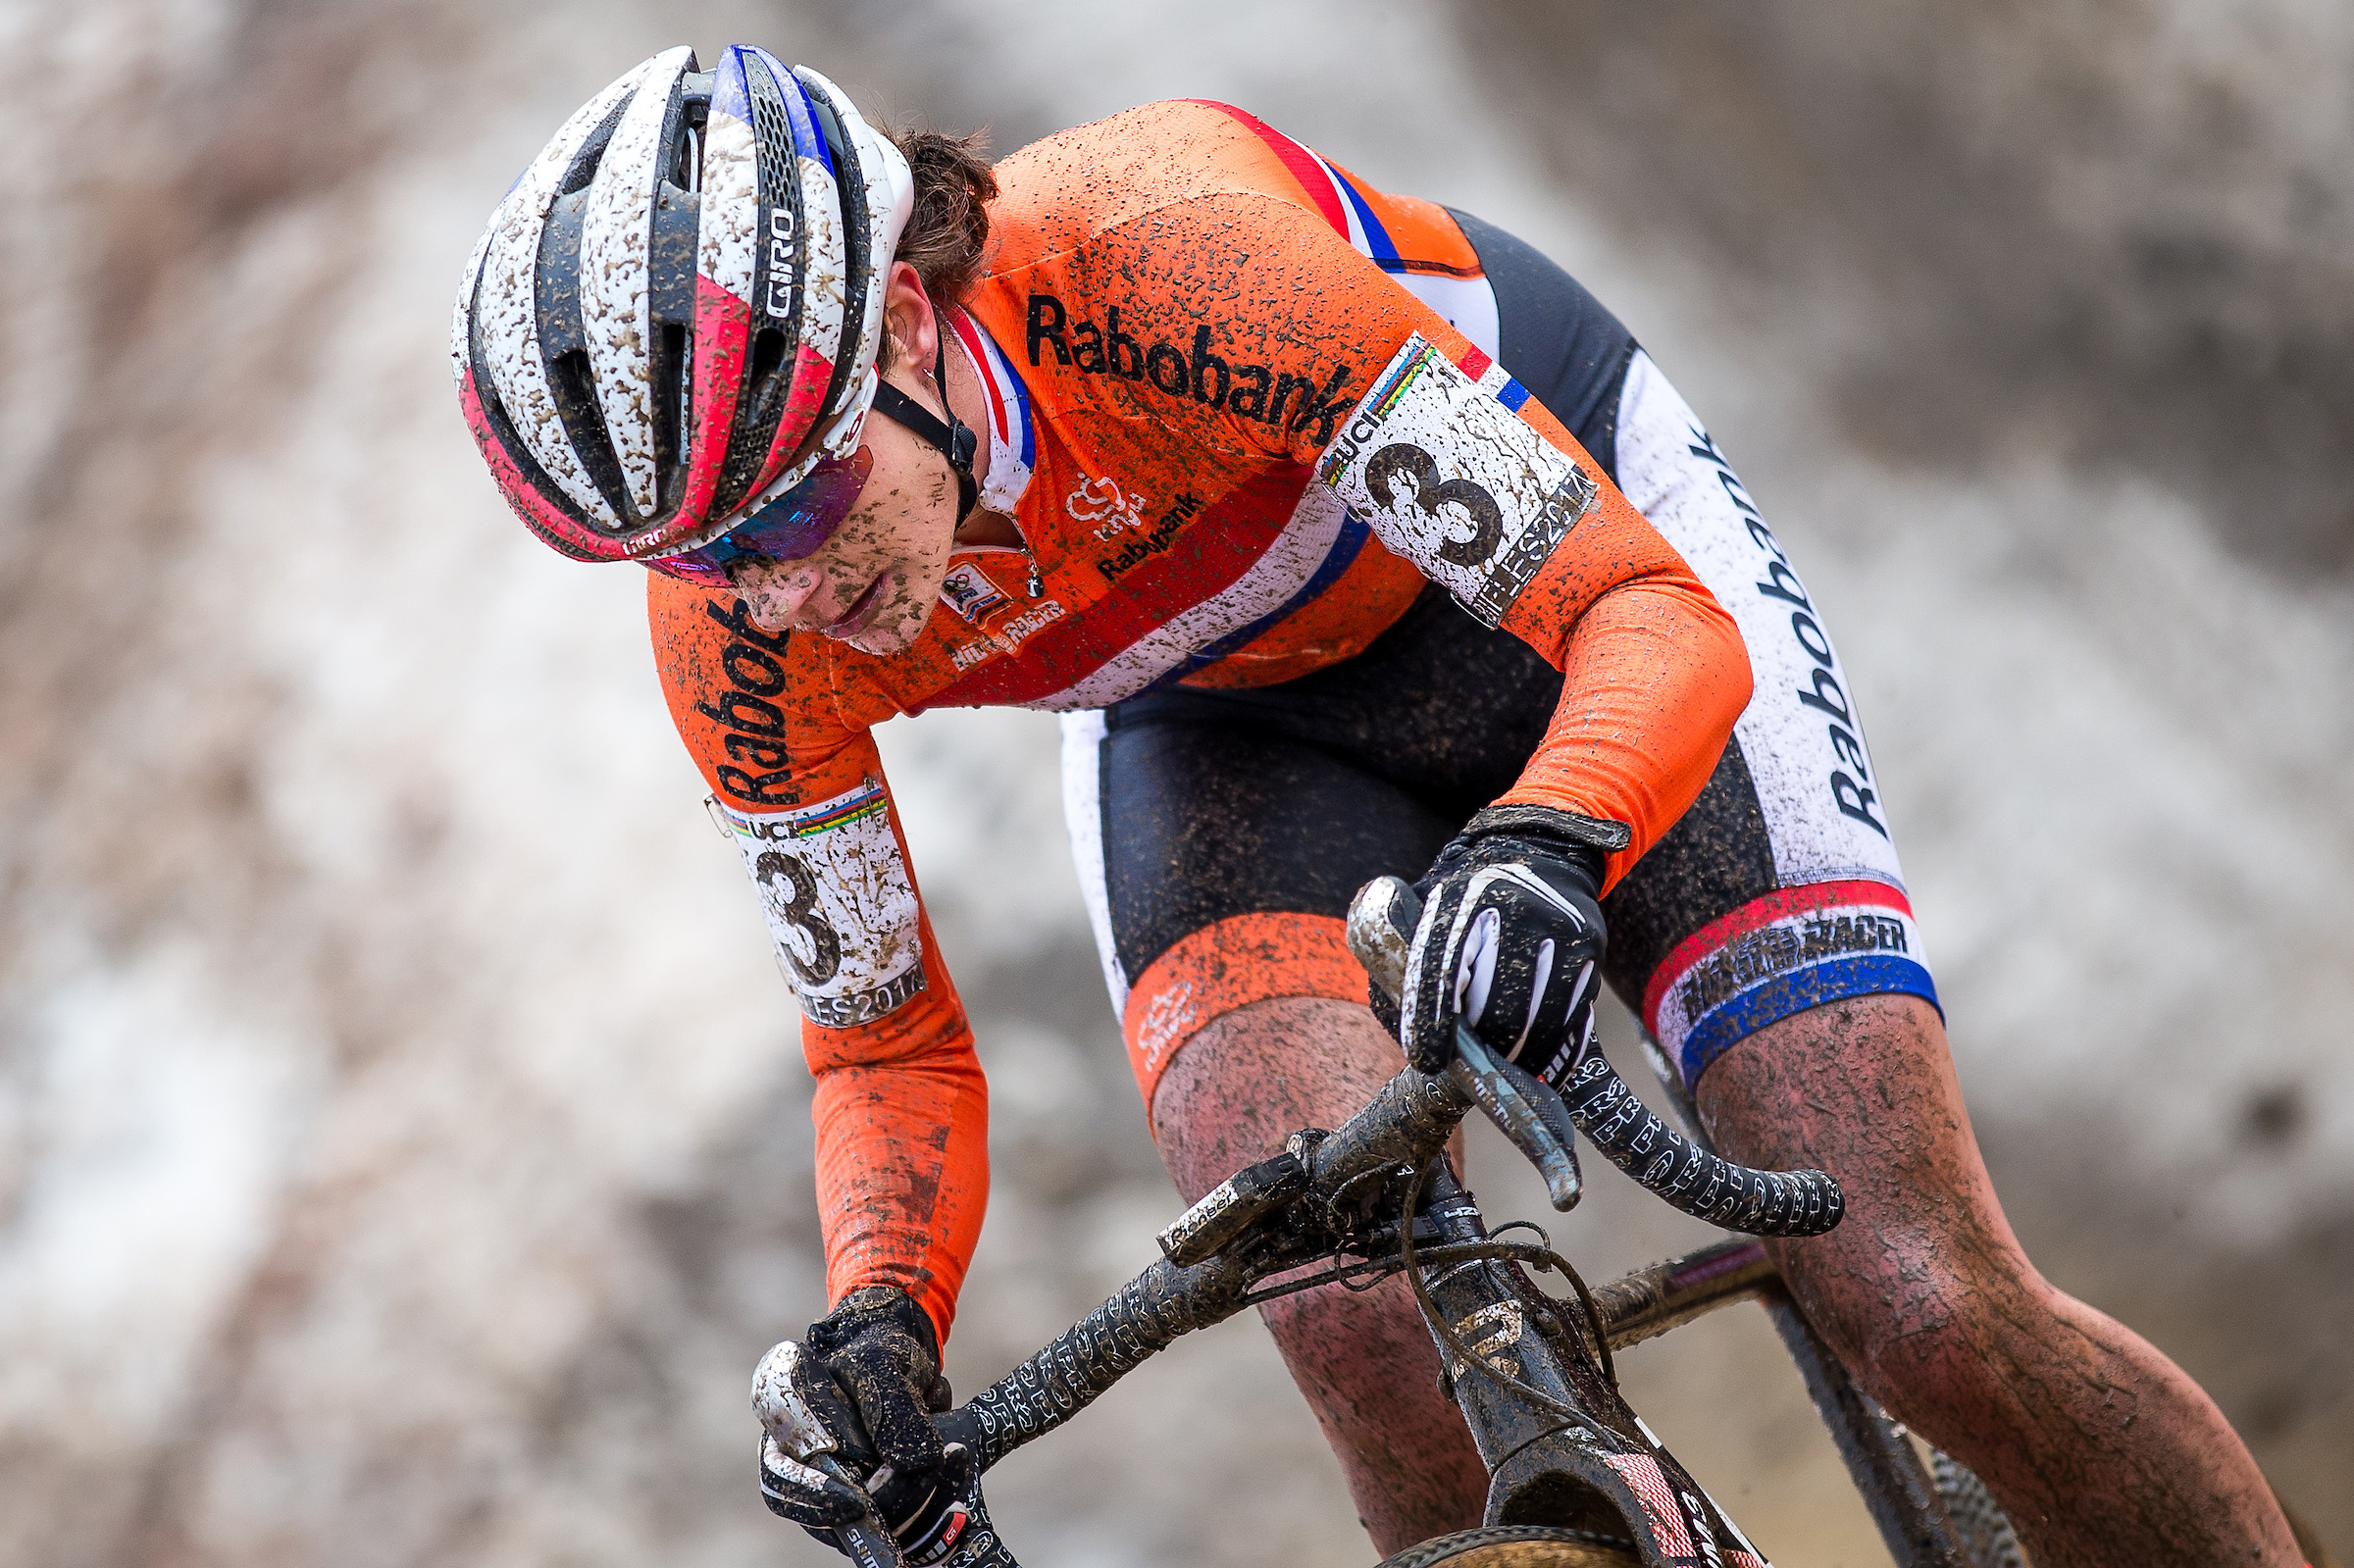 Marianne Vos at 2017 World Champs.jpg